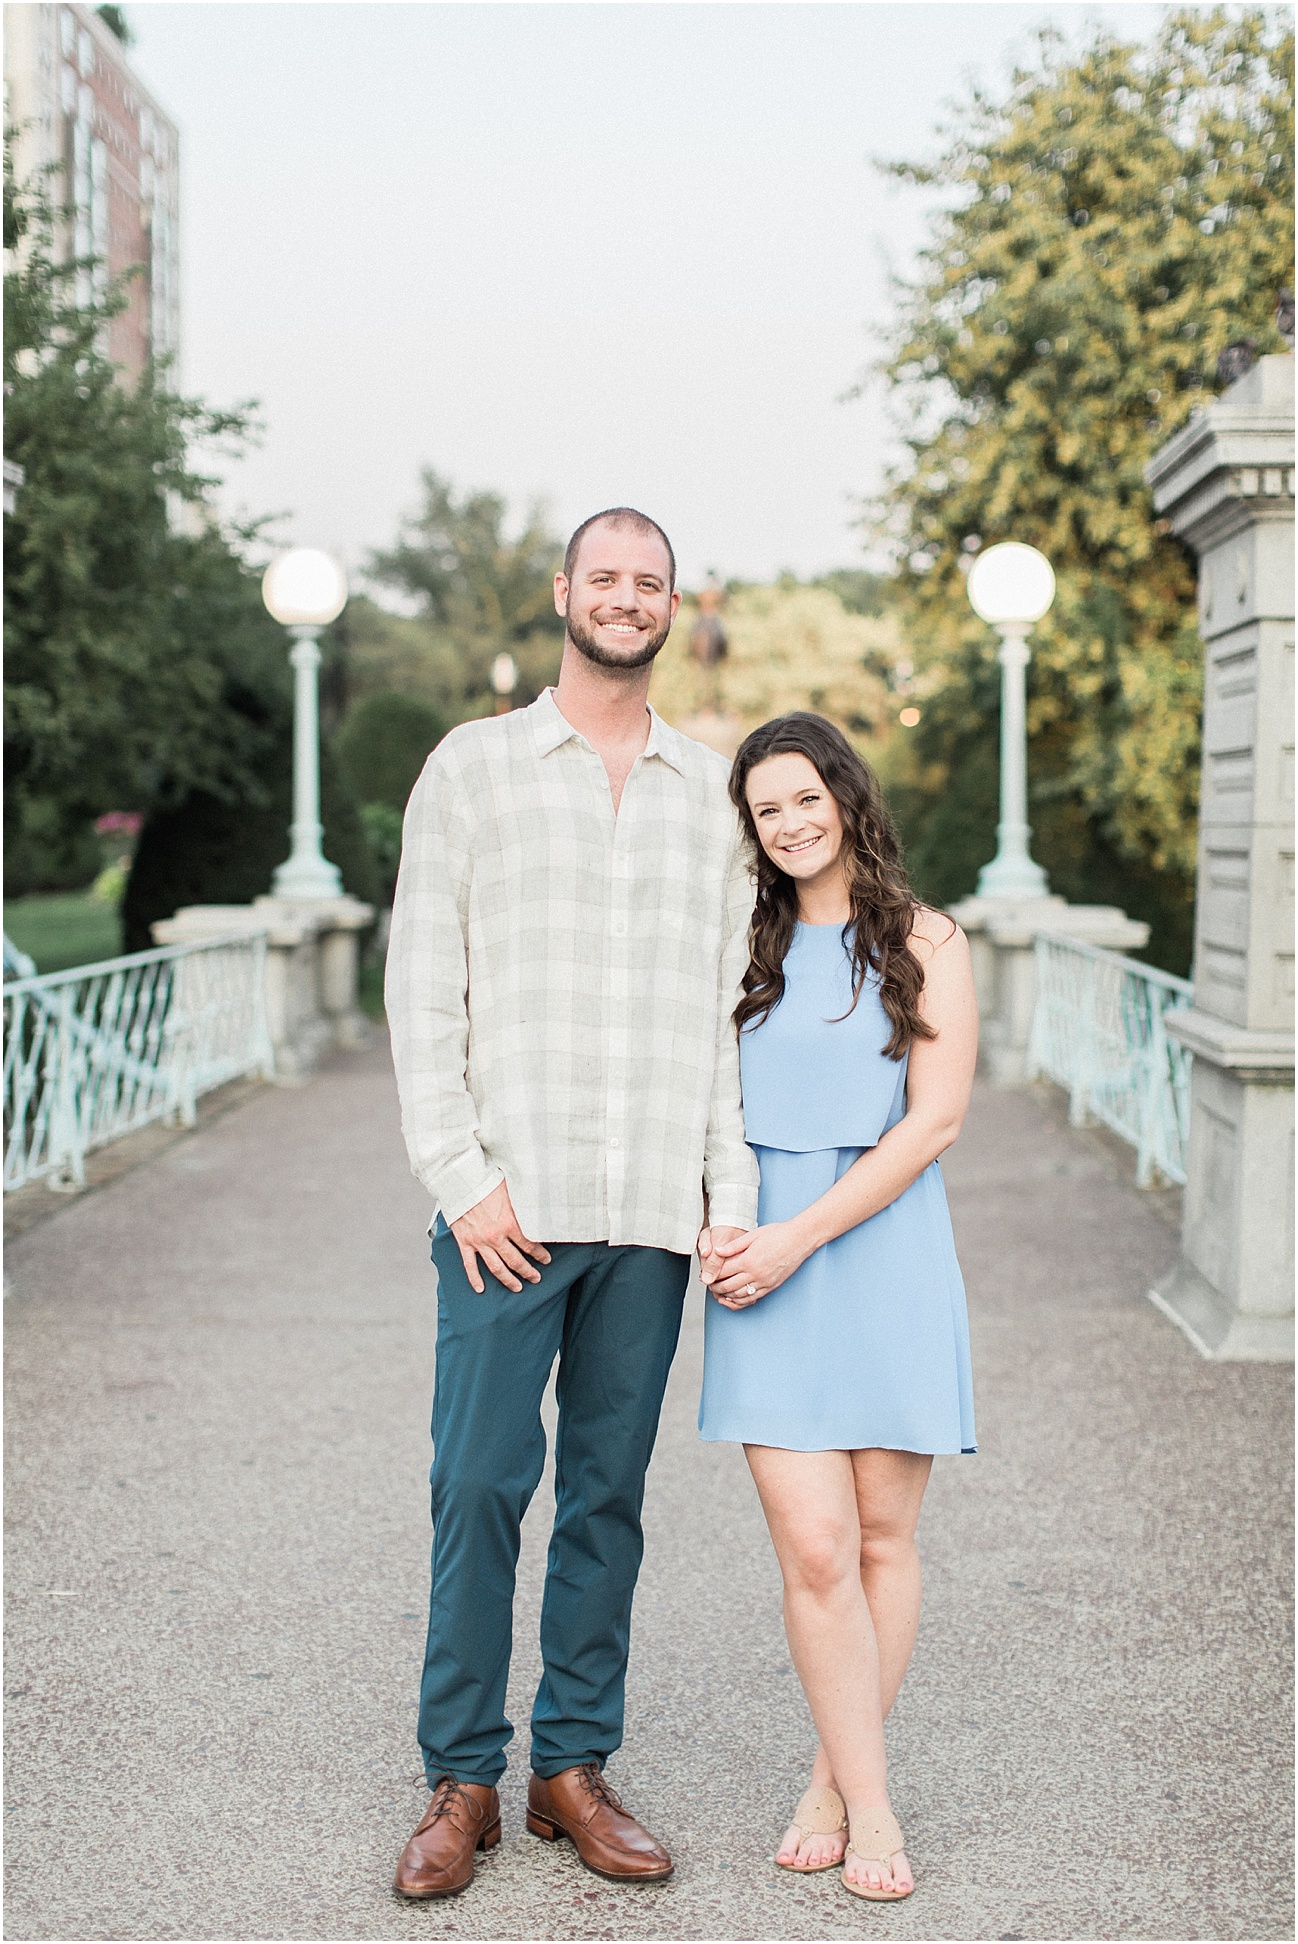 christina_frank_common_engagement_acorn_street_back_bay_cape_cod_boston_wedding_photographer_meredith_jane_photography_photo_0718.jpg